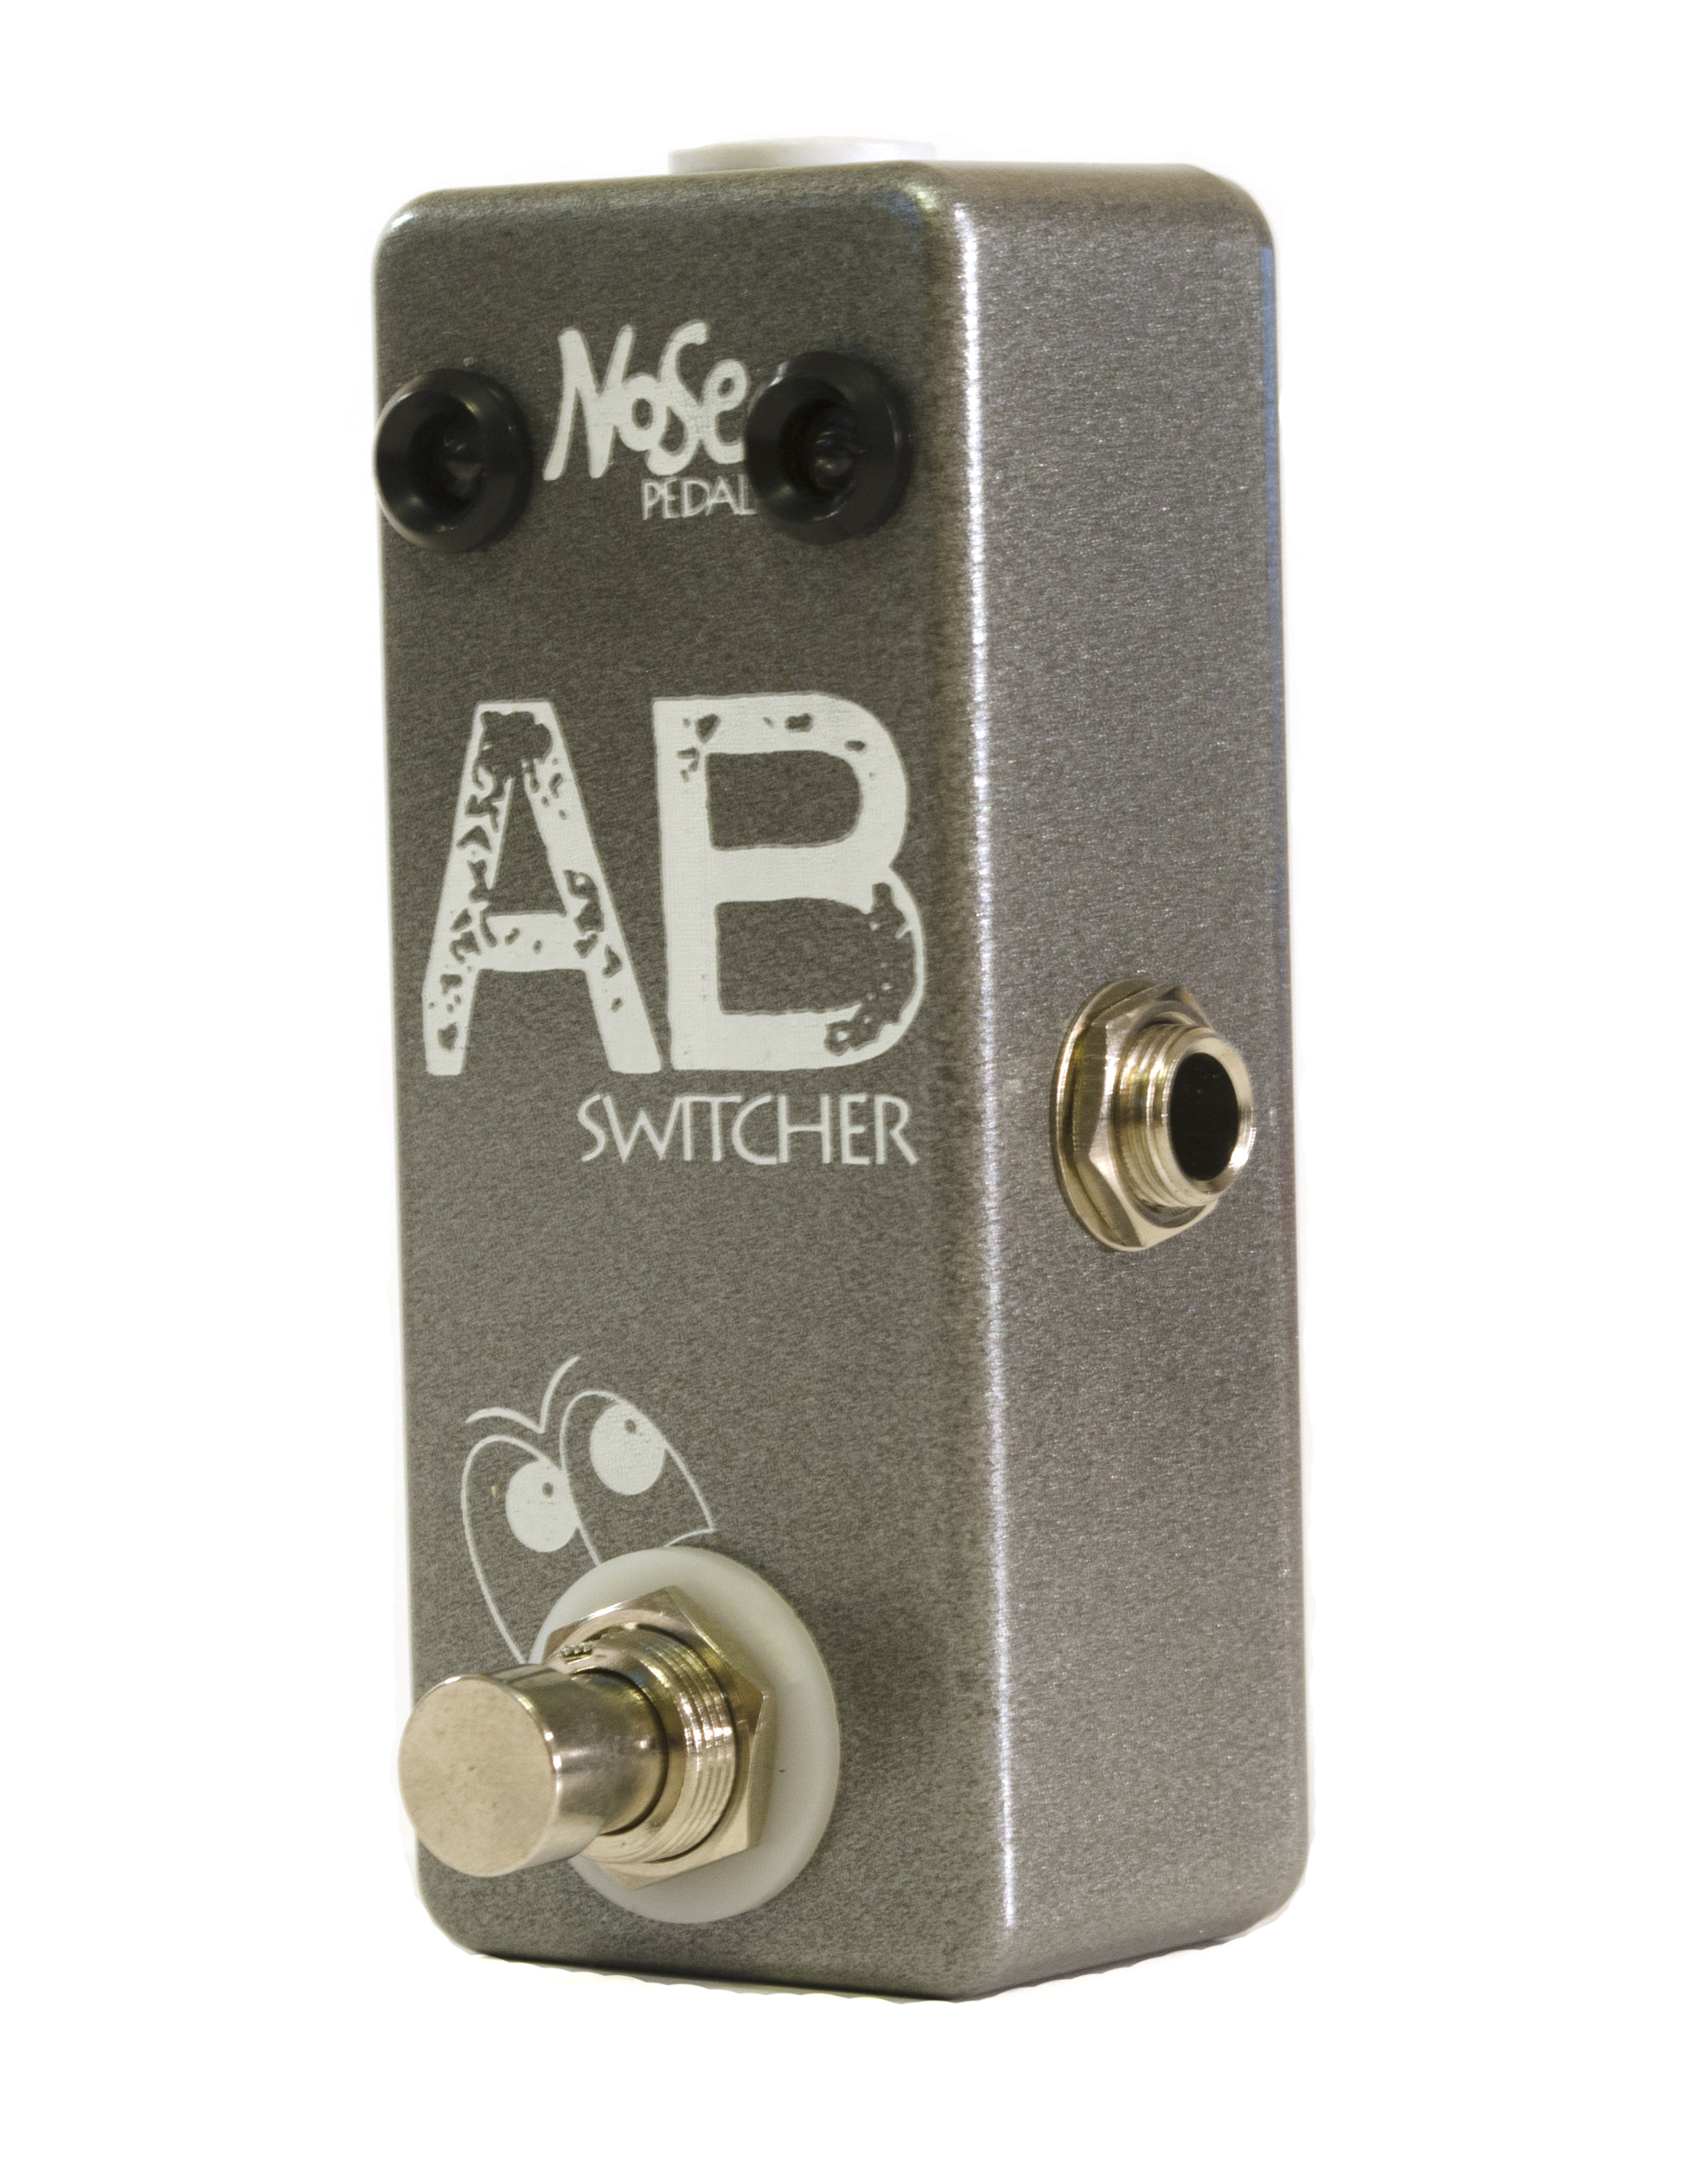 ab switch box nosepedal and westminster effects guitar pedals. Black Bedroom Furniture Sets. Home Design Ideas